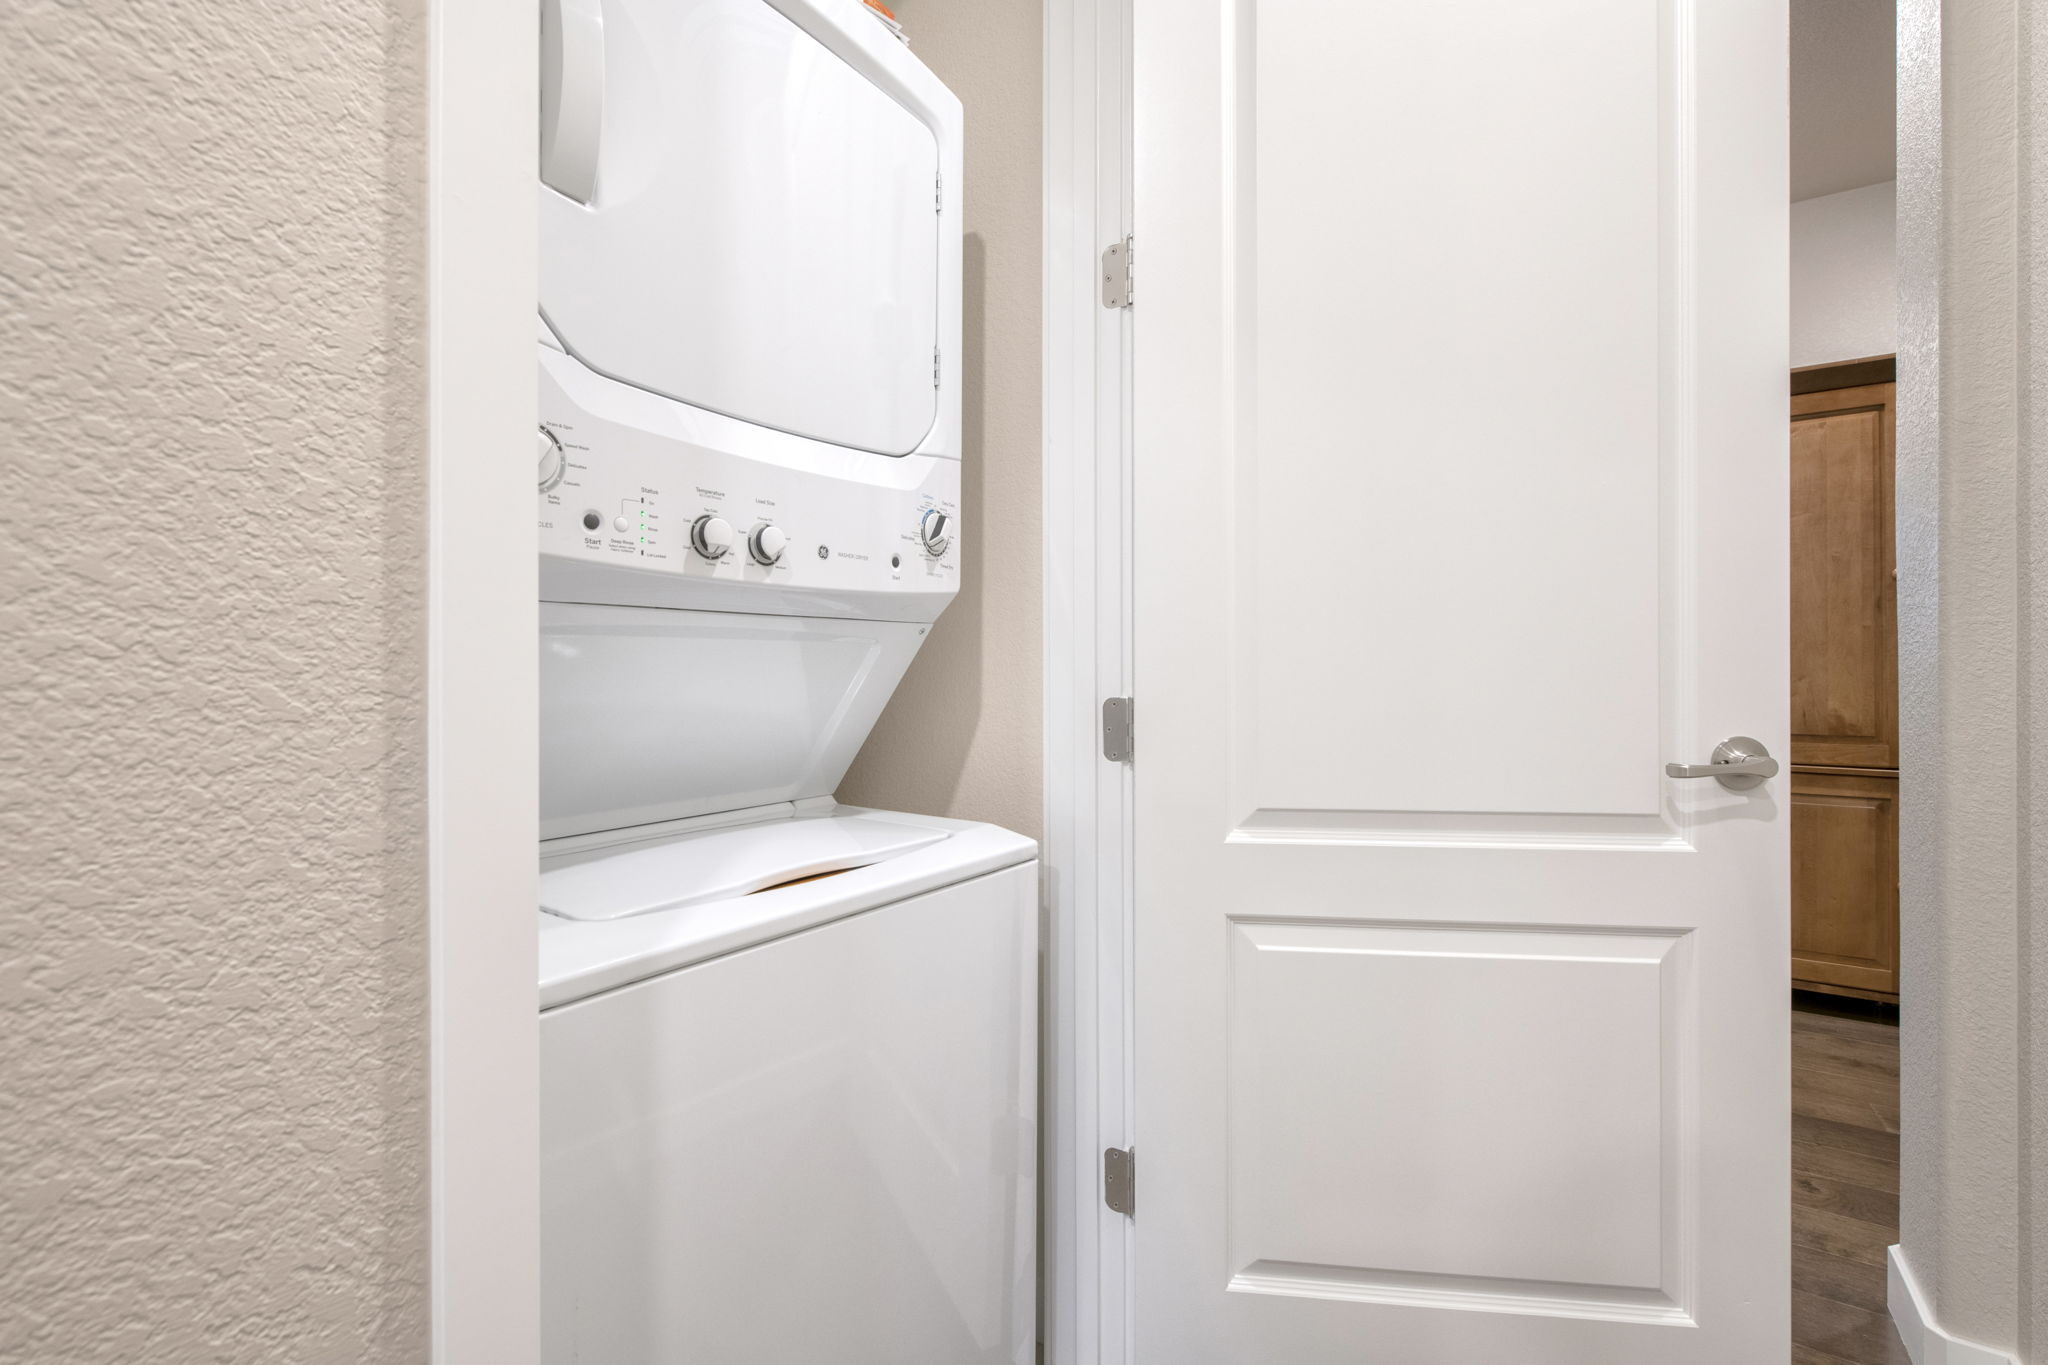 Apartment Laundry Room